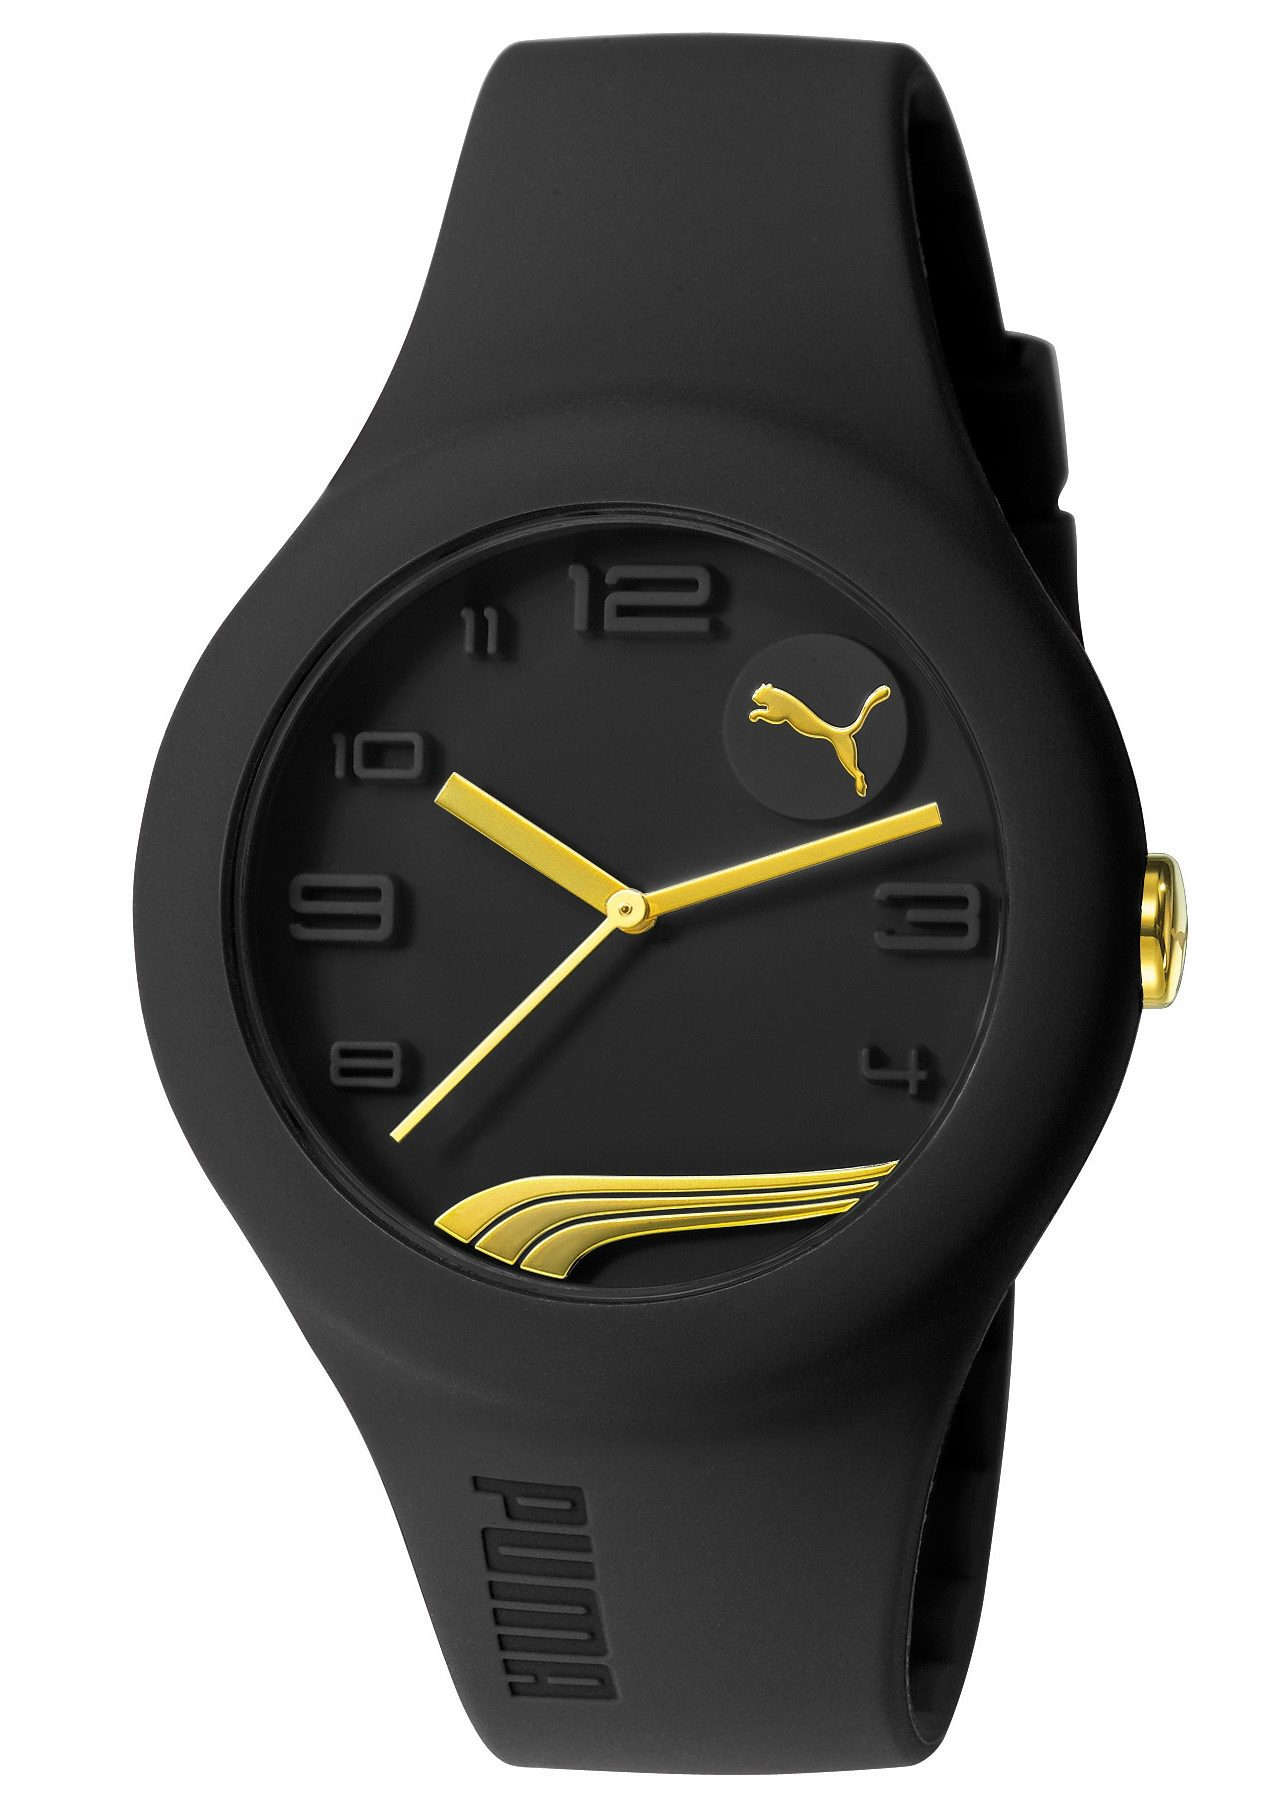 PUMA Quarzuhr »PUMA 10300 FORM - Black Gold, PU103001014«